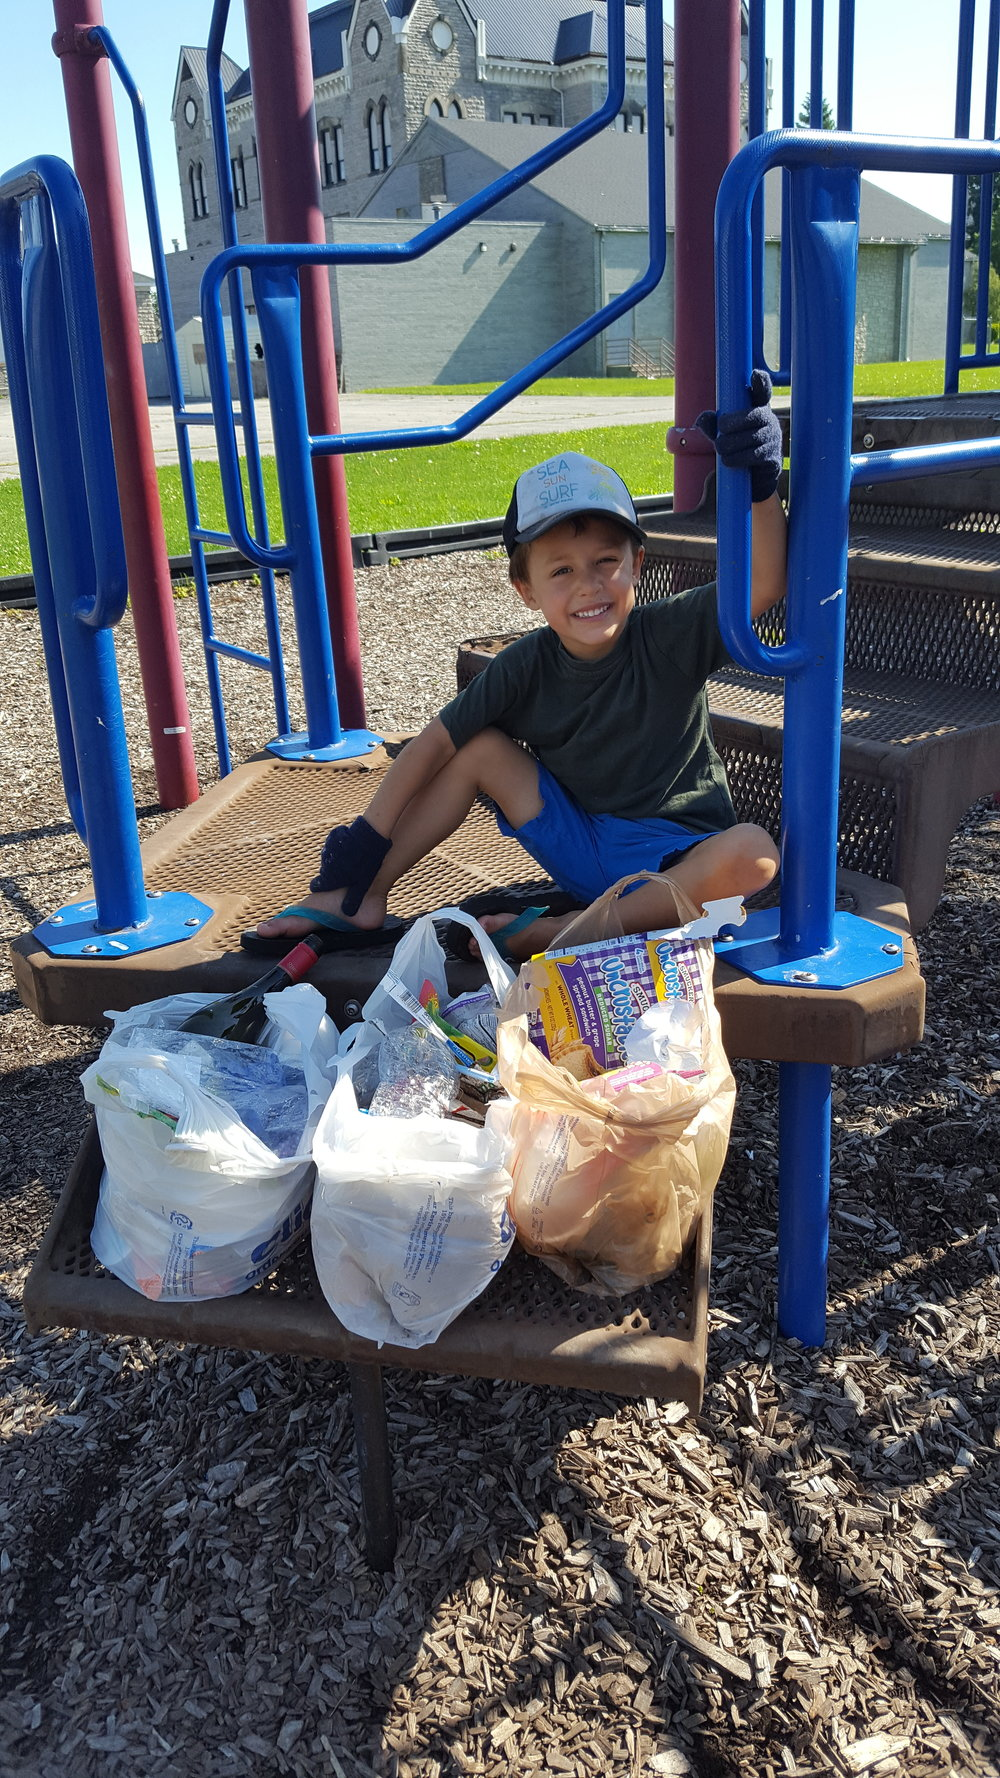 RAK: Sandusky, Ohio - Bennett wanted to complete his own park clean up so we found gloves, bags, and went to it.